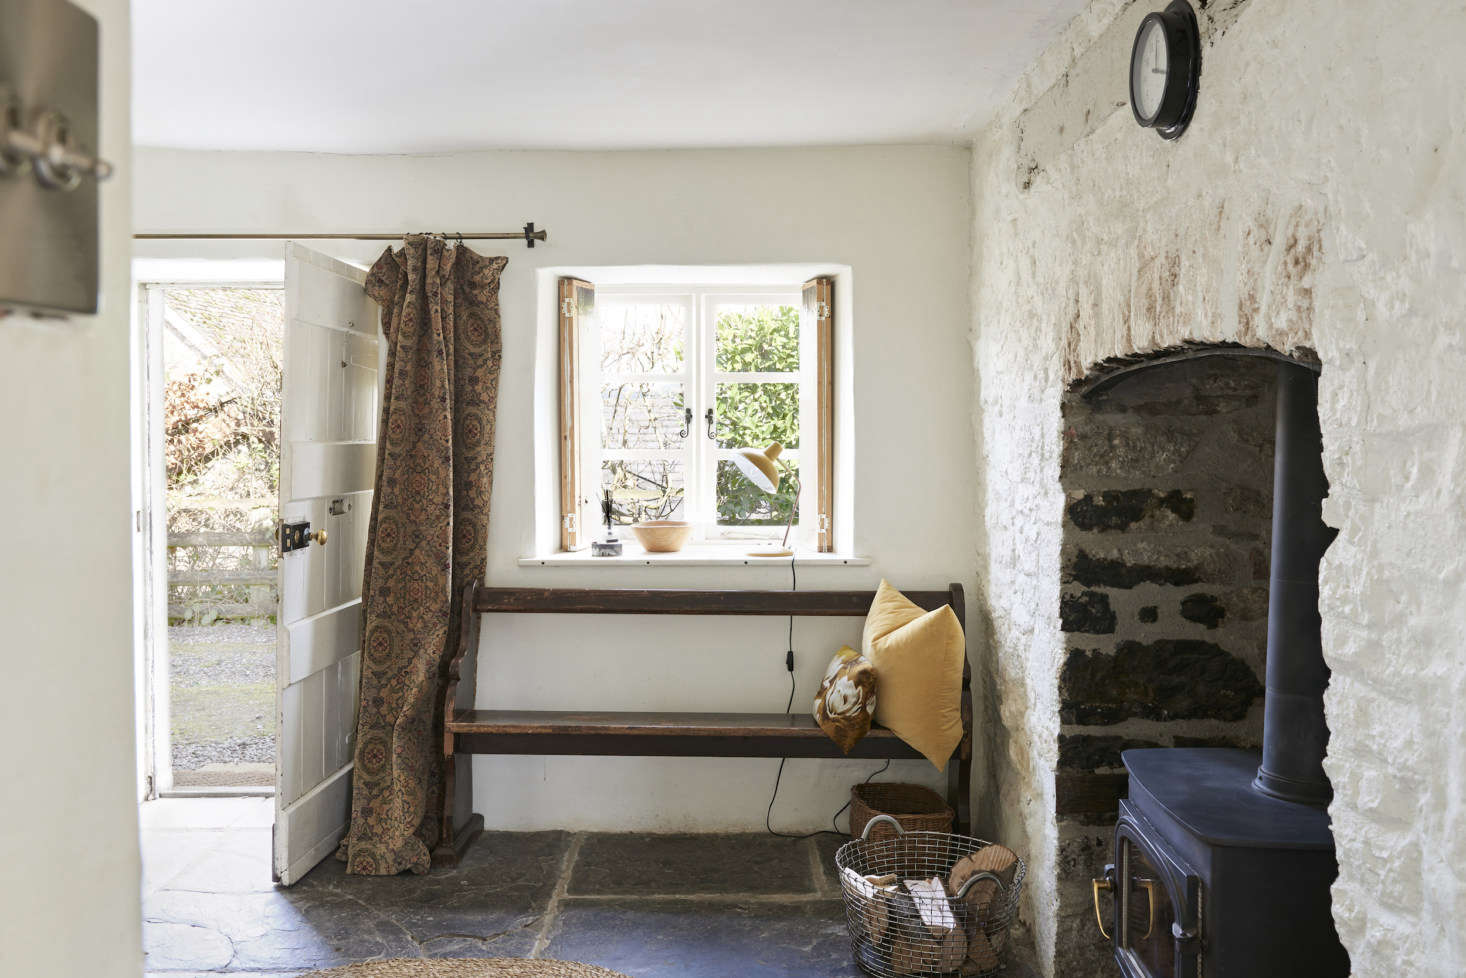 The front door leads to a rustic entrance hall with its original flagstone floor intact. Justine installed a curtain in front of the door for reasons both aesthetic and practical (it helps with the drafts).